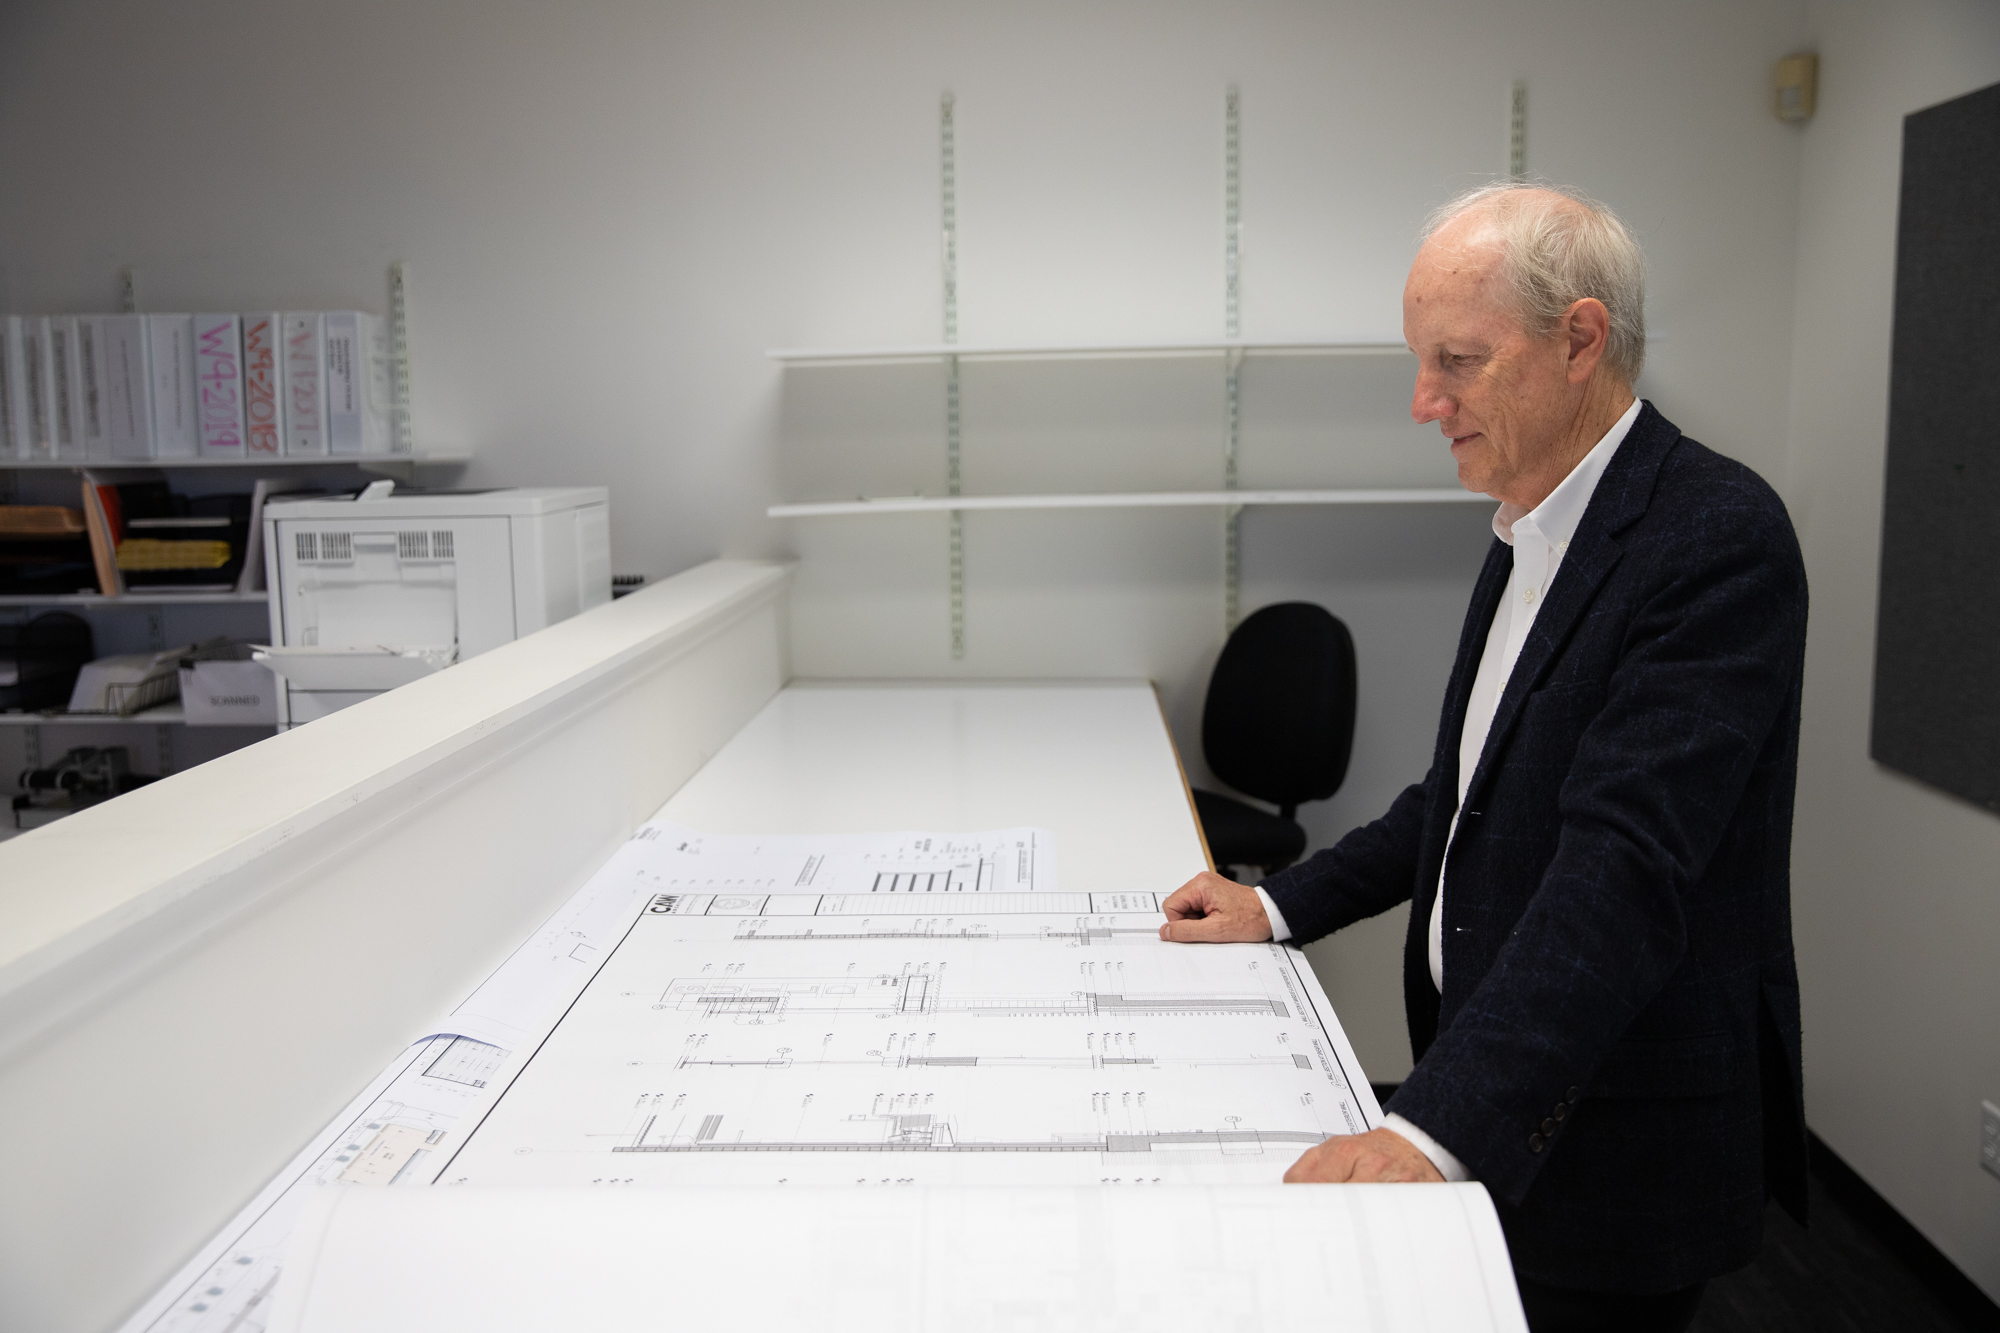 Loren Brown, a third-generation owner of Vance Brown Builders, looks at blueprints for a remodel of the Guild Theatre in Menlo Park on Oct. 2. Photo by Magali Gauthier.